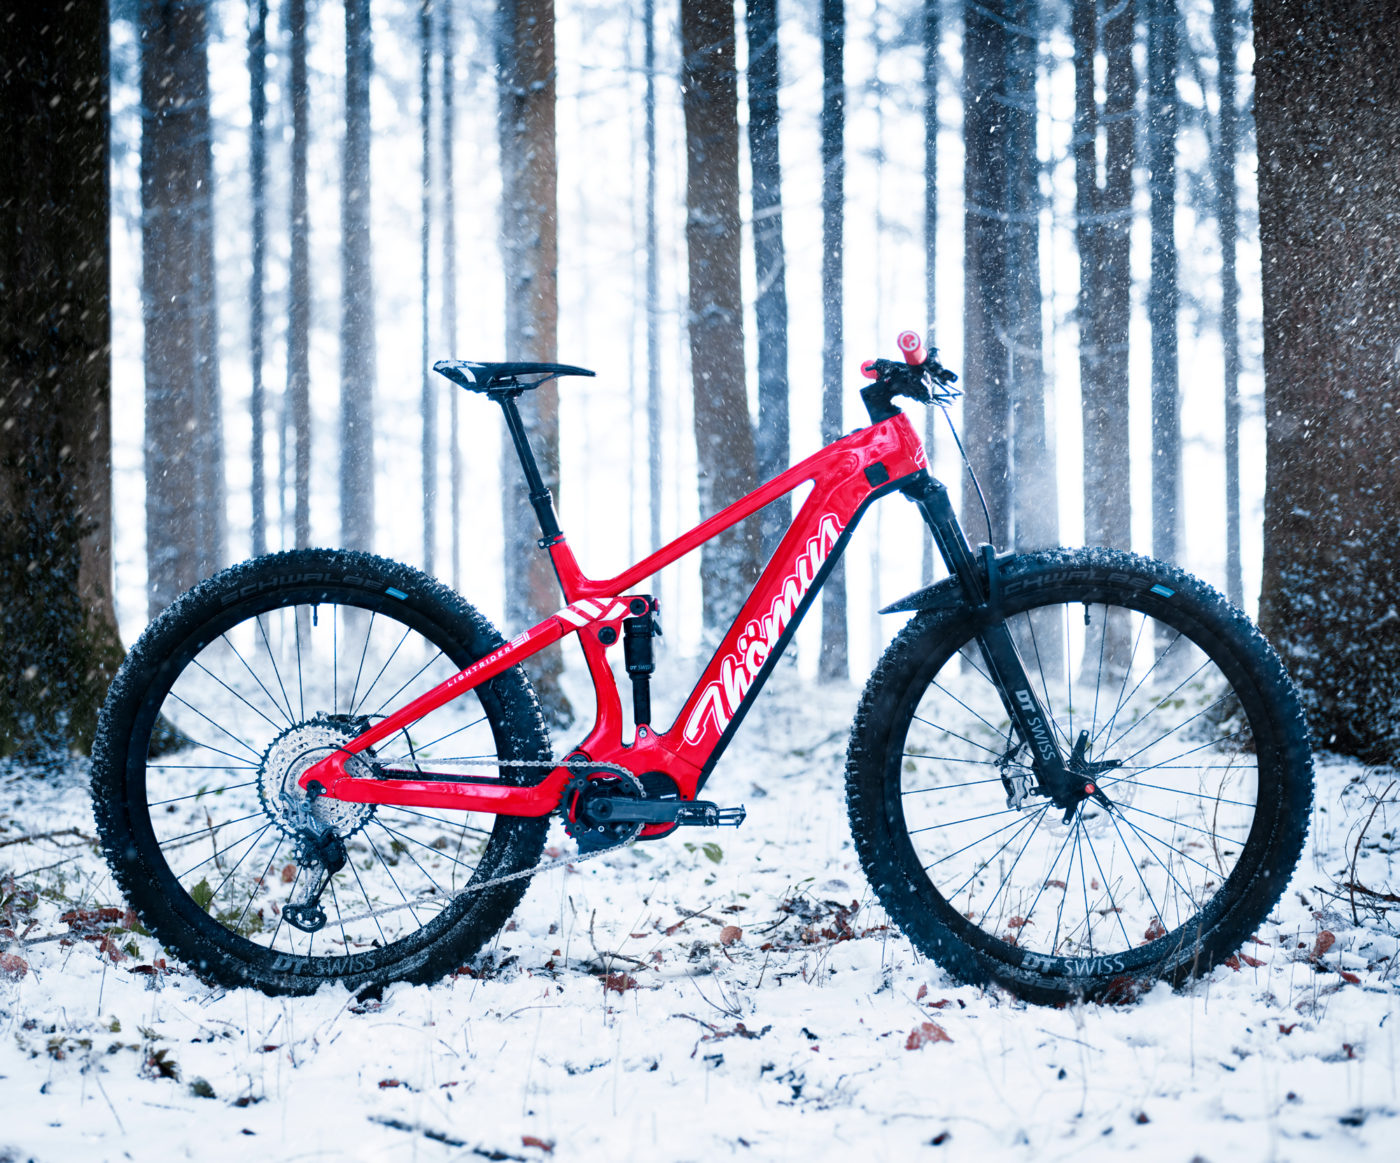 Der neue Lightrider E2 – The Swiss Thing